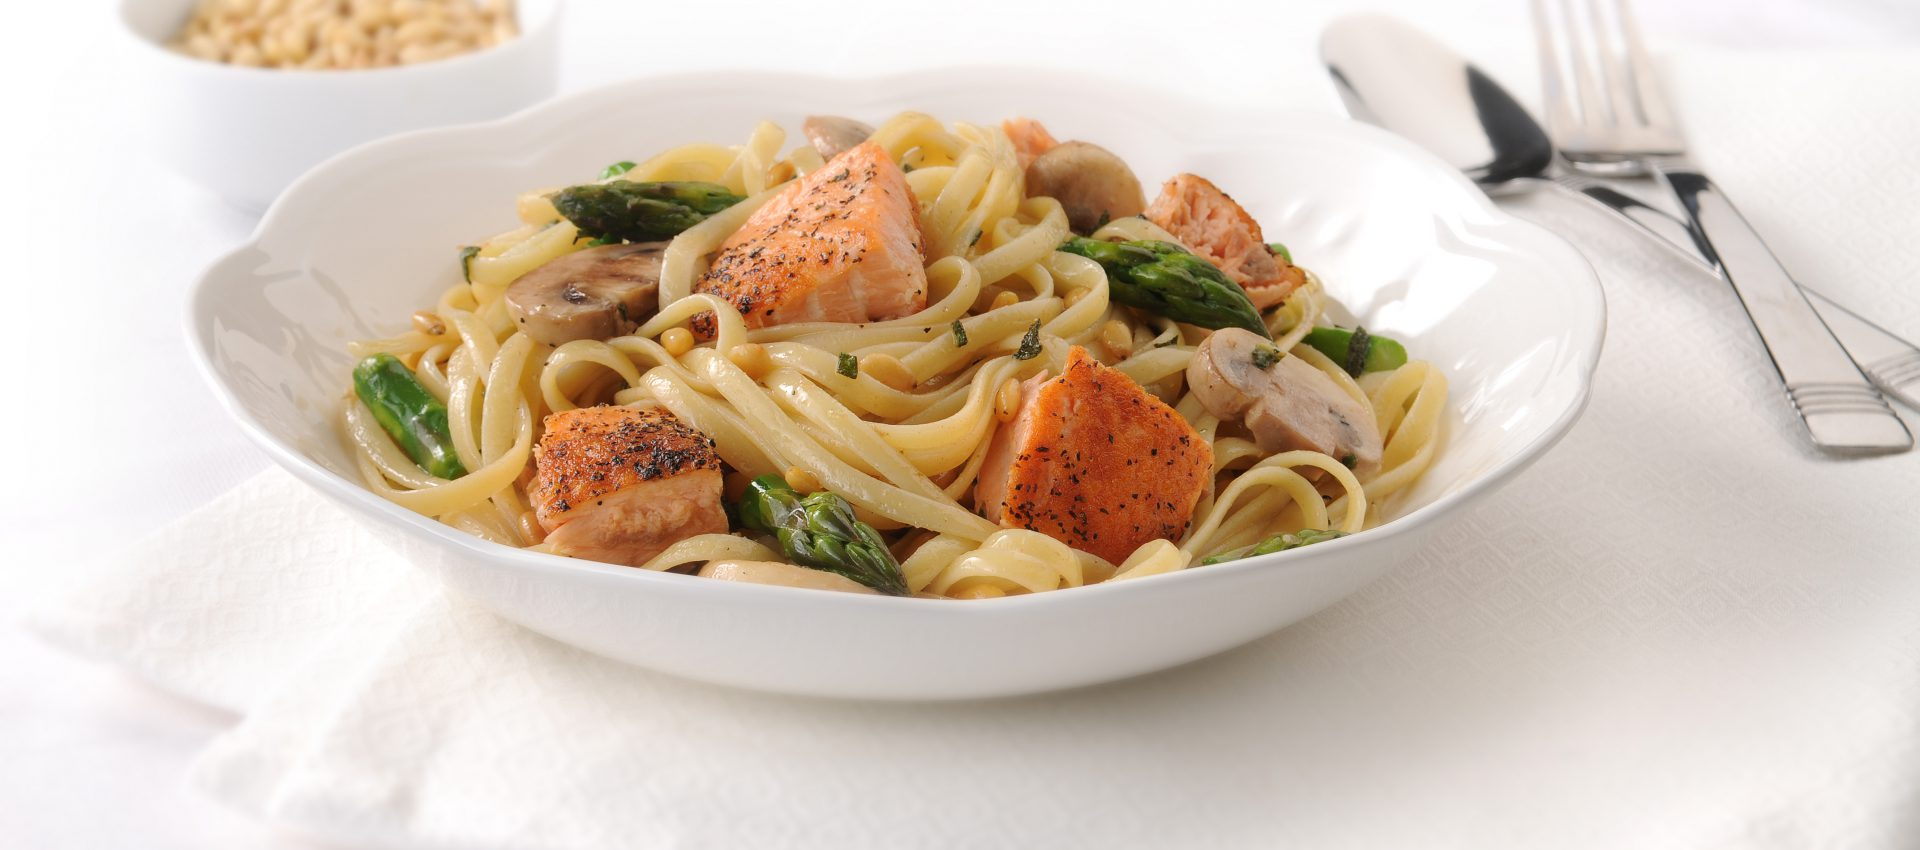 Linguine-with-Salmon-and-Asparagus-in-Brown-Butter-Sauce-1920x850 Linguine with Salmon and Asparagus in Brown Butter Sauce